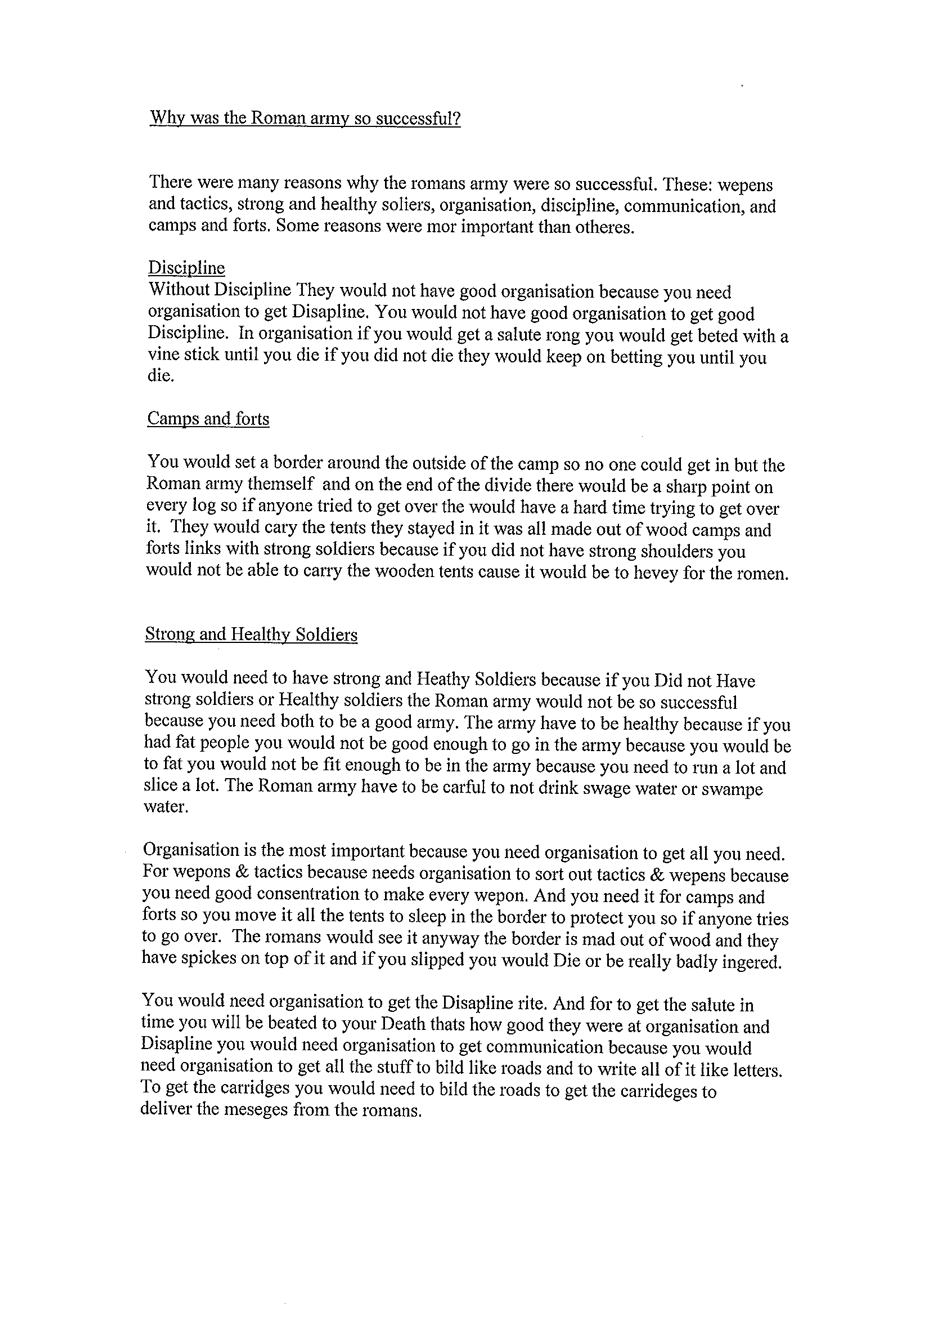 002 History20level203201 120 Tcm8 Essay Example Exemplification Unusual Topics Good Unique Question Full